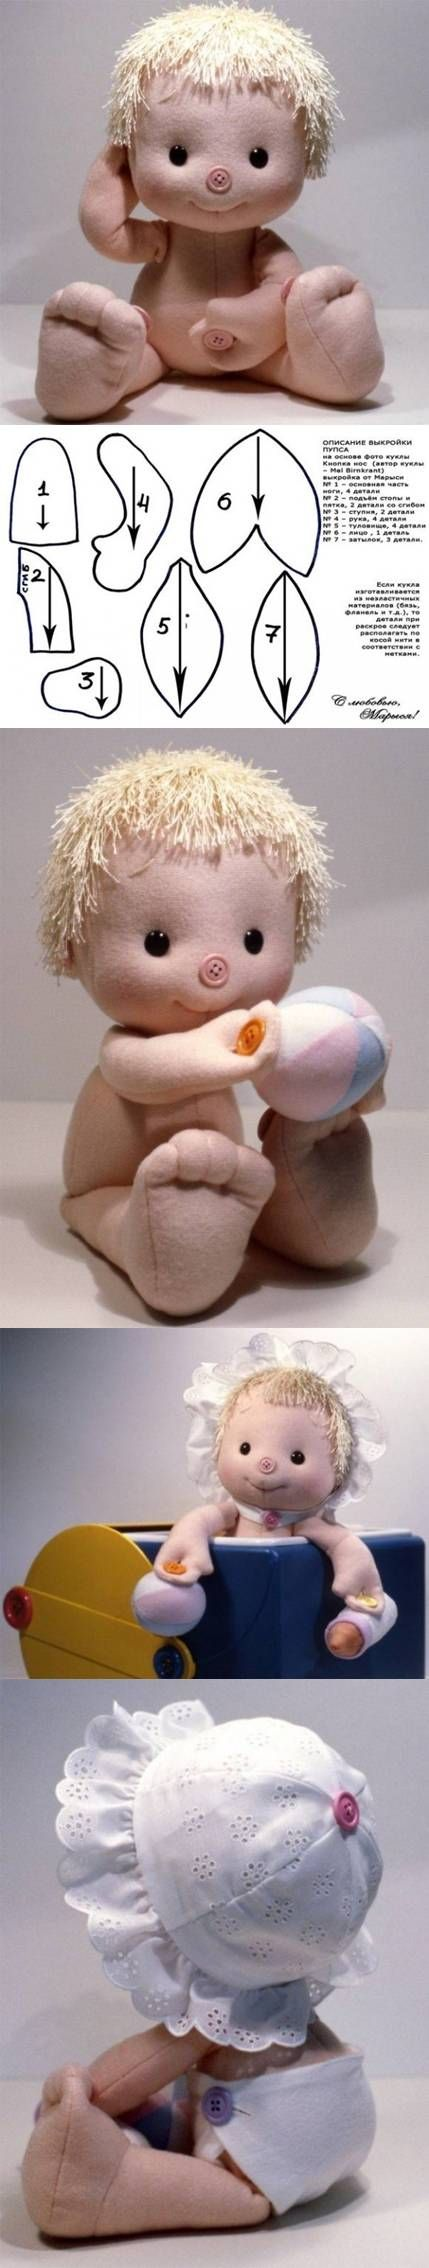 "omg!...this baby doll is ""cute as a button""....and comes with a FREE pattern, too!!! i have to sew one soon!! i LOVE him!!...."